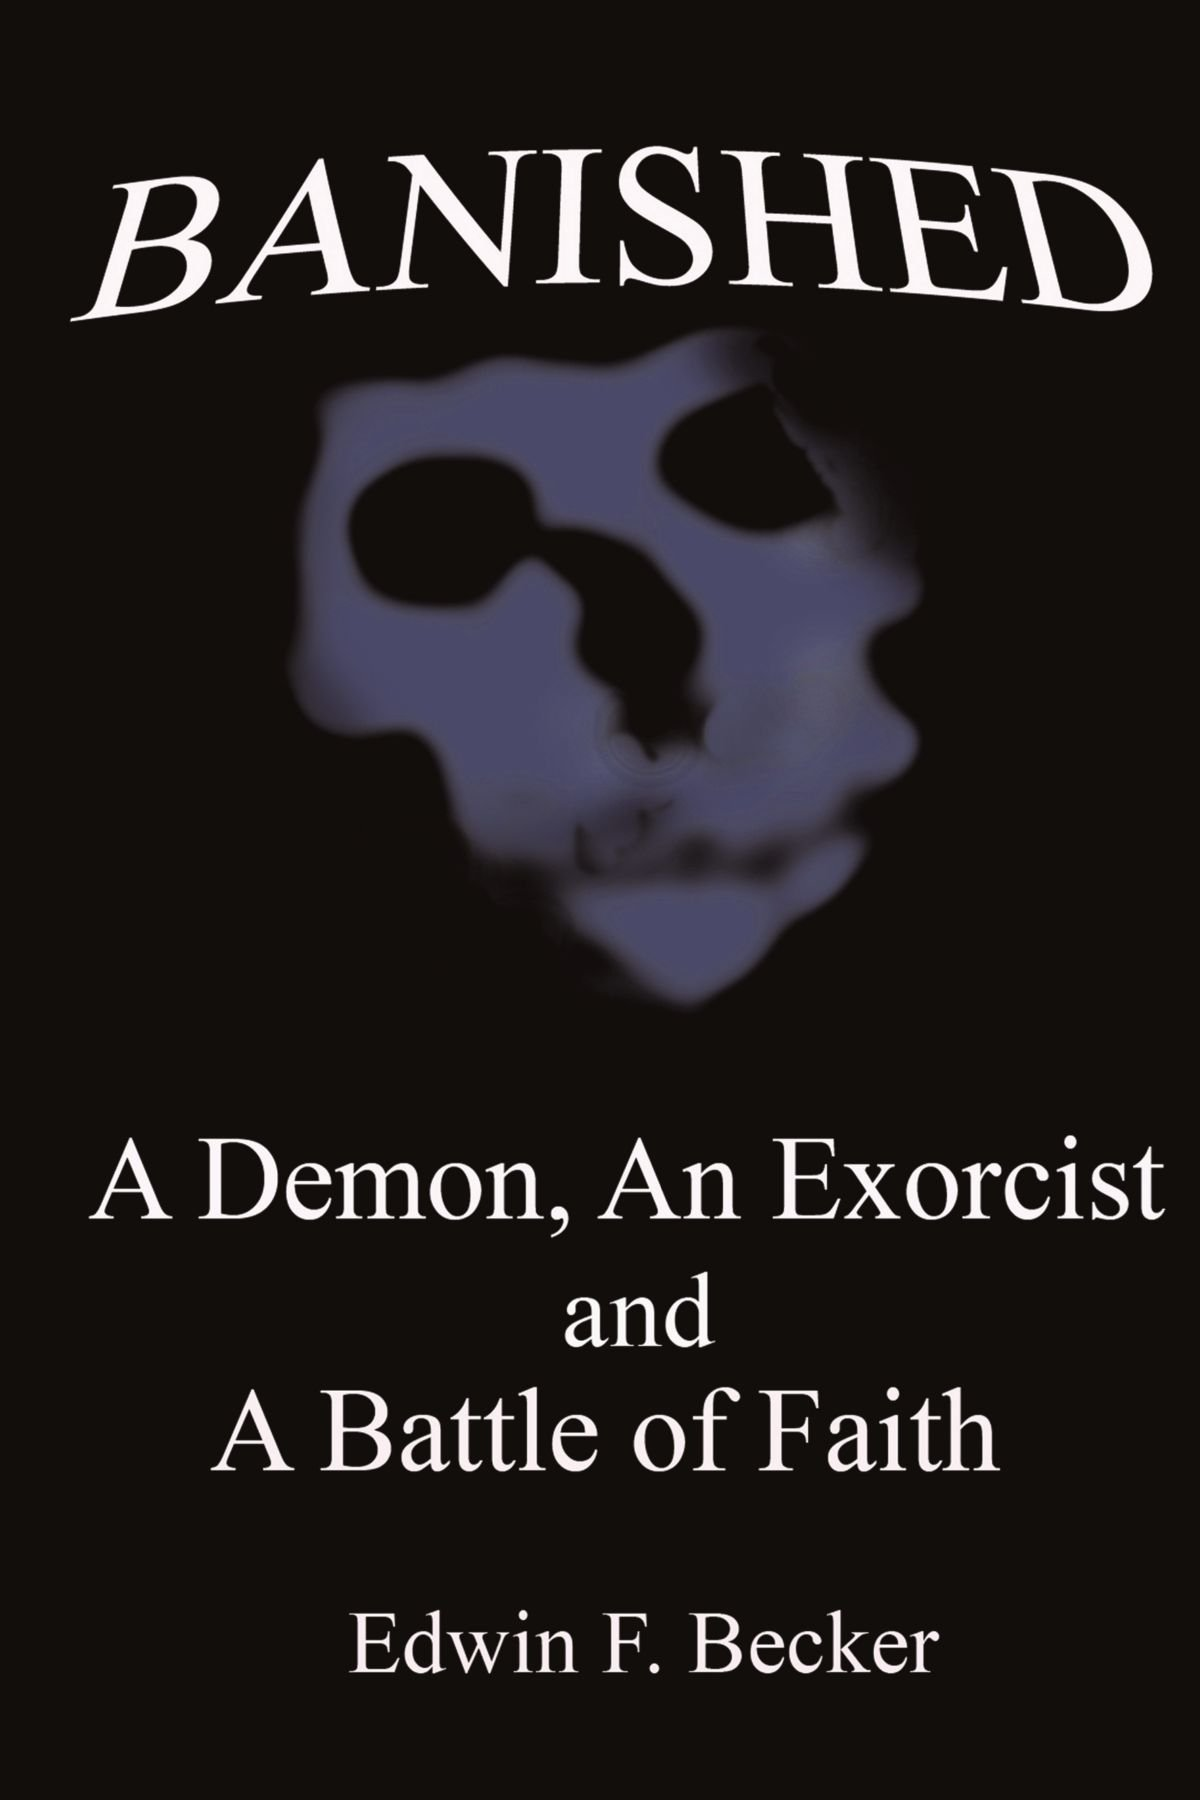 Download Banished: A Demon, An Exorcist And A Battle Of Faith ebook